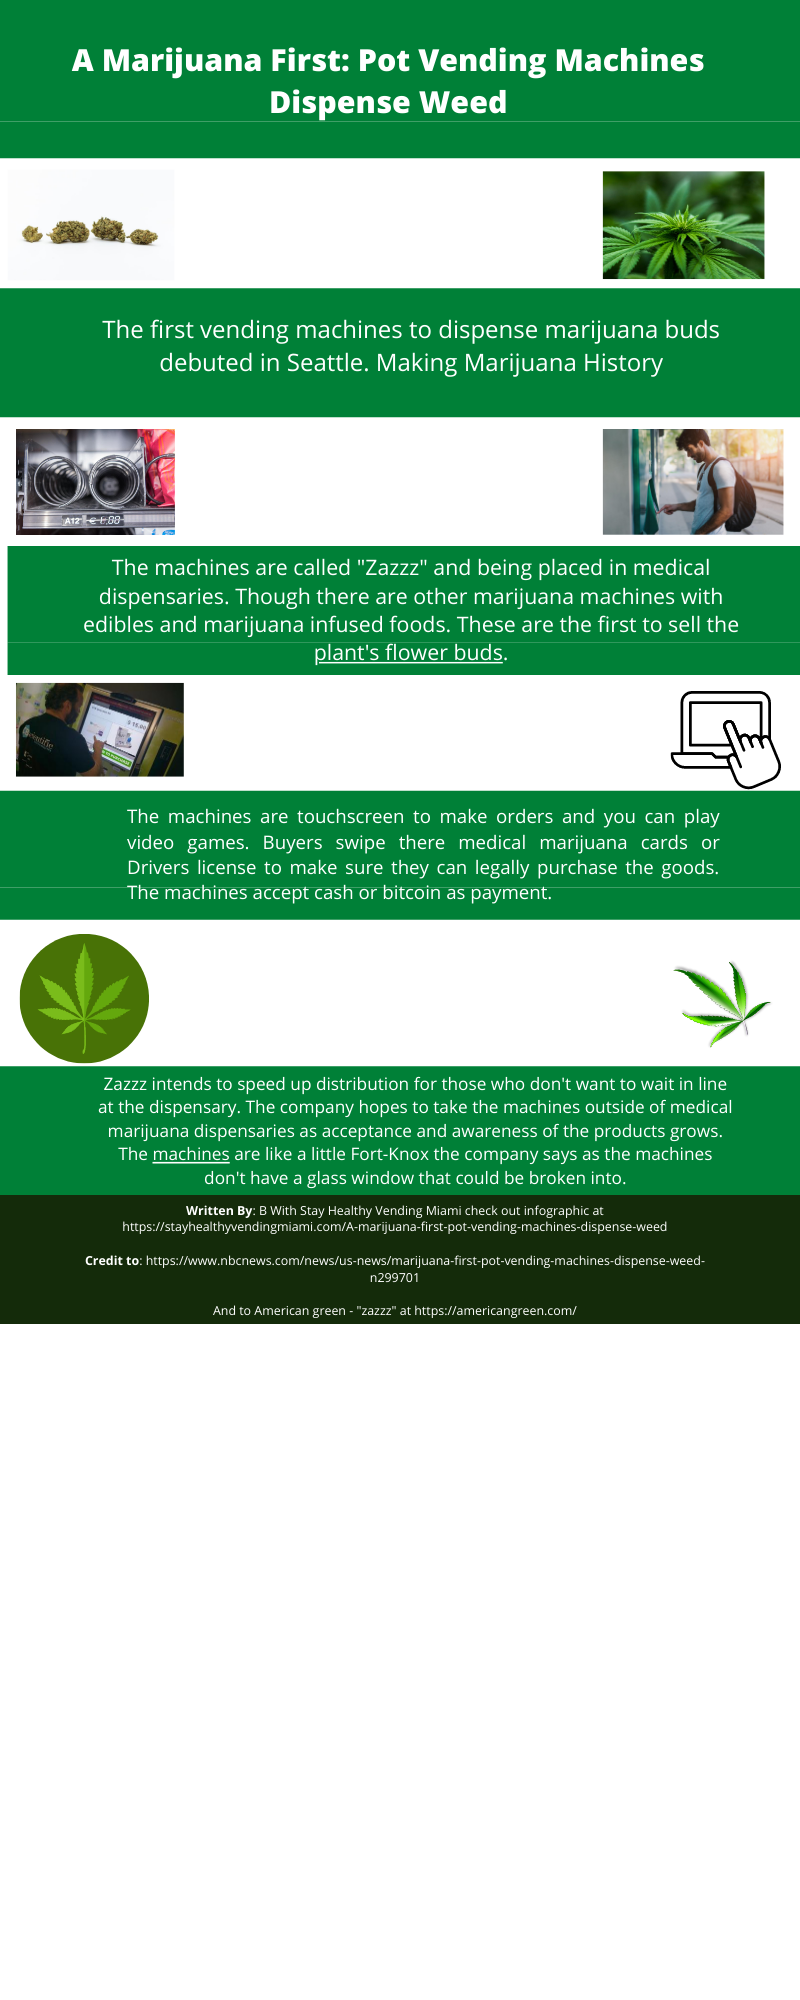 An info-graphic of A Marijuana First: Pot Vending Machines Dispense Weed. Explaining the new vending machines being installed that sell marijuana flower buds. The first vending machines to do this. Other machines sell edibles and food infused marijuana but don't sell actual marijuana flower buds